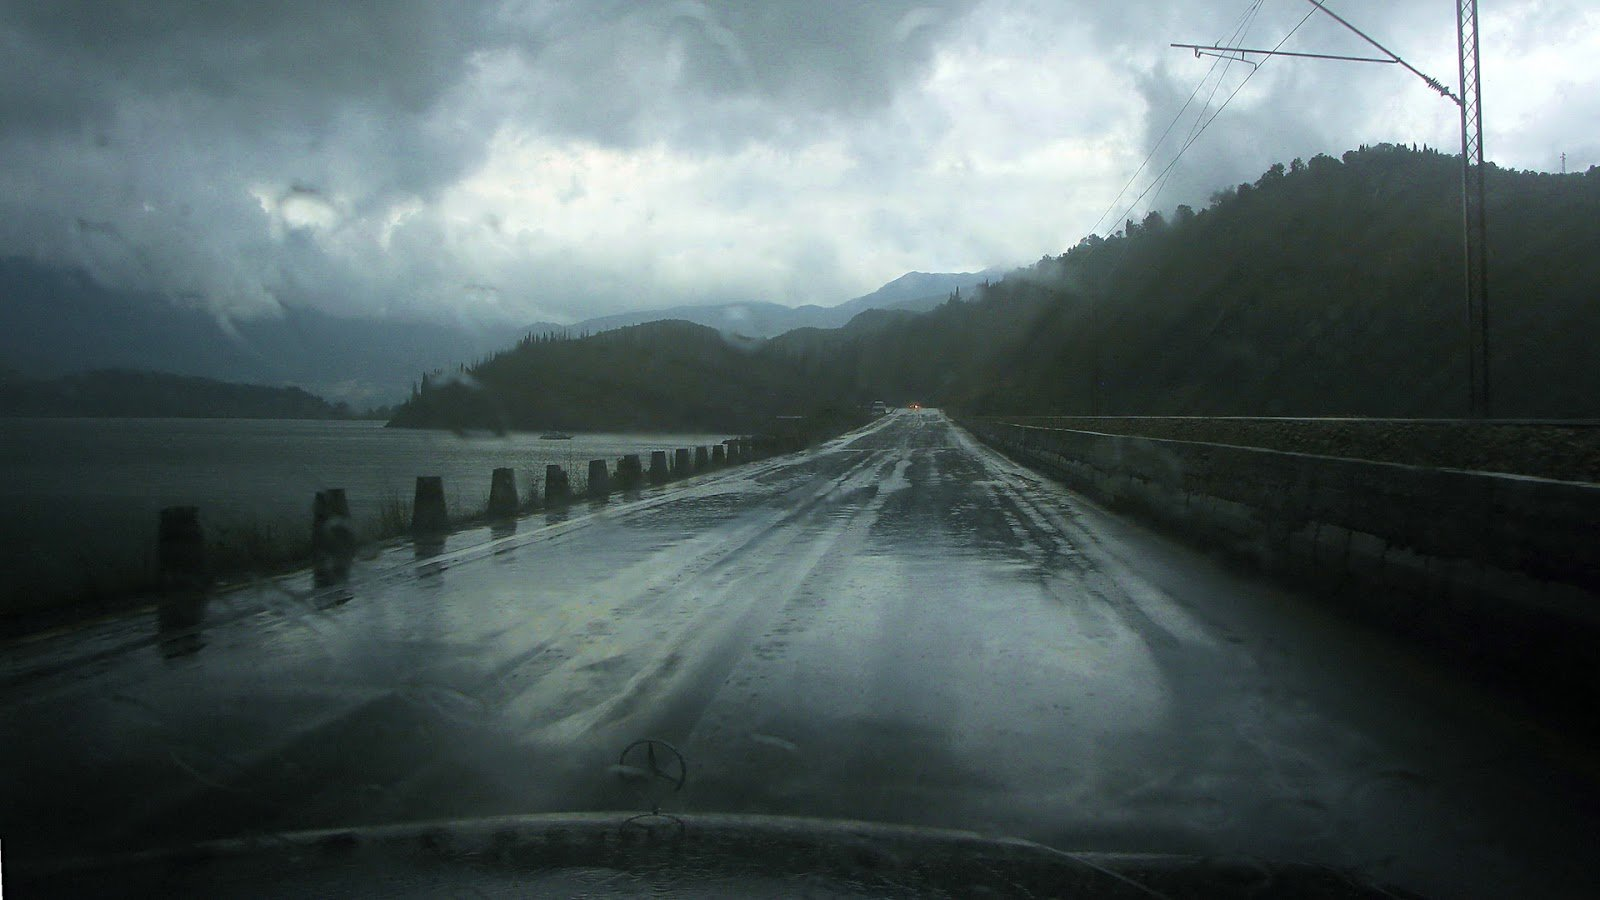 Hd wallpaper rain - Rain Hd Wallpapers Rain Hd Wallpapers Check Out The Cool Latest Rain